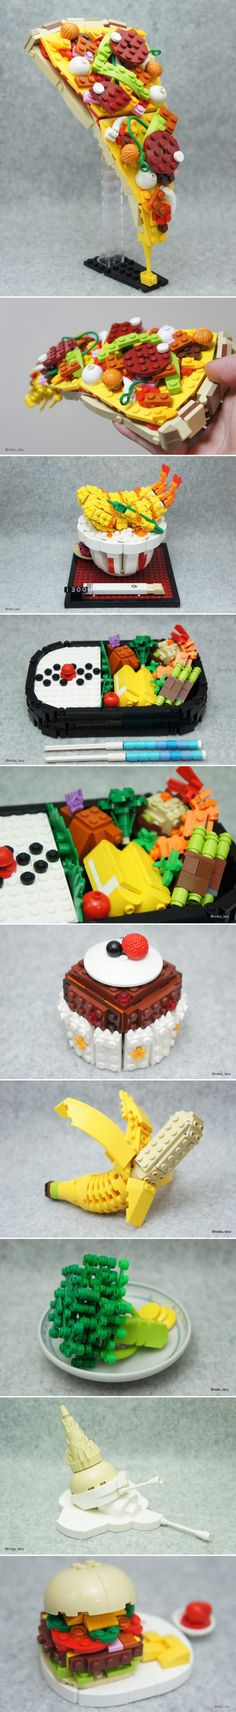 More Lego food art by Japanese artist Tary